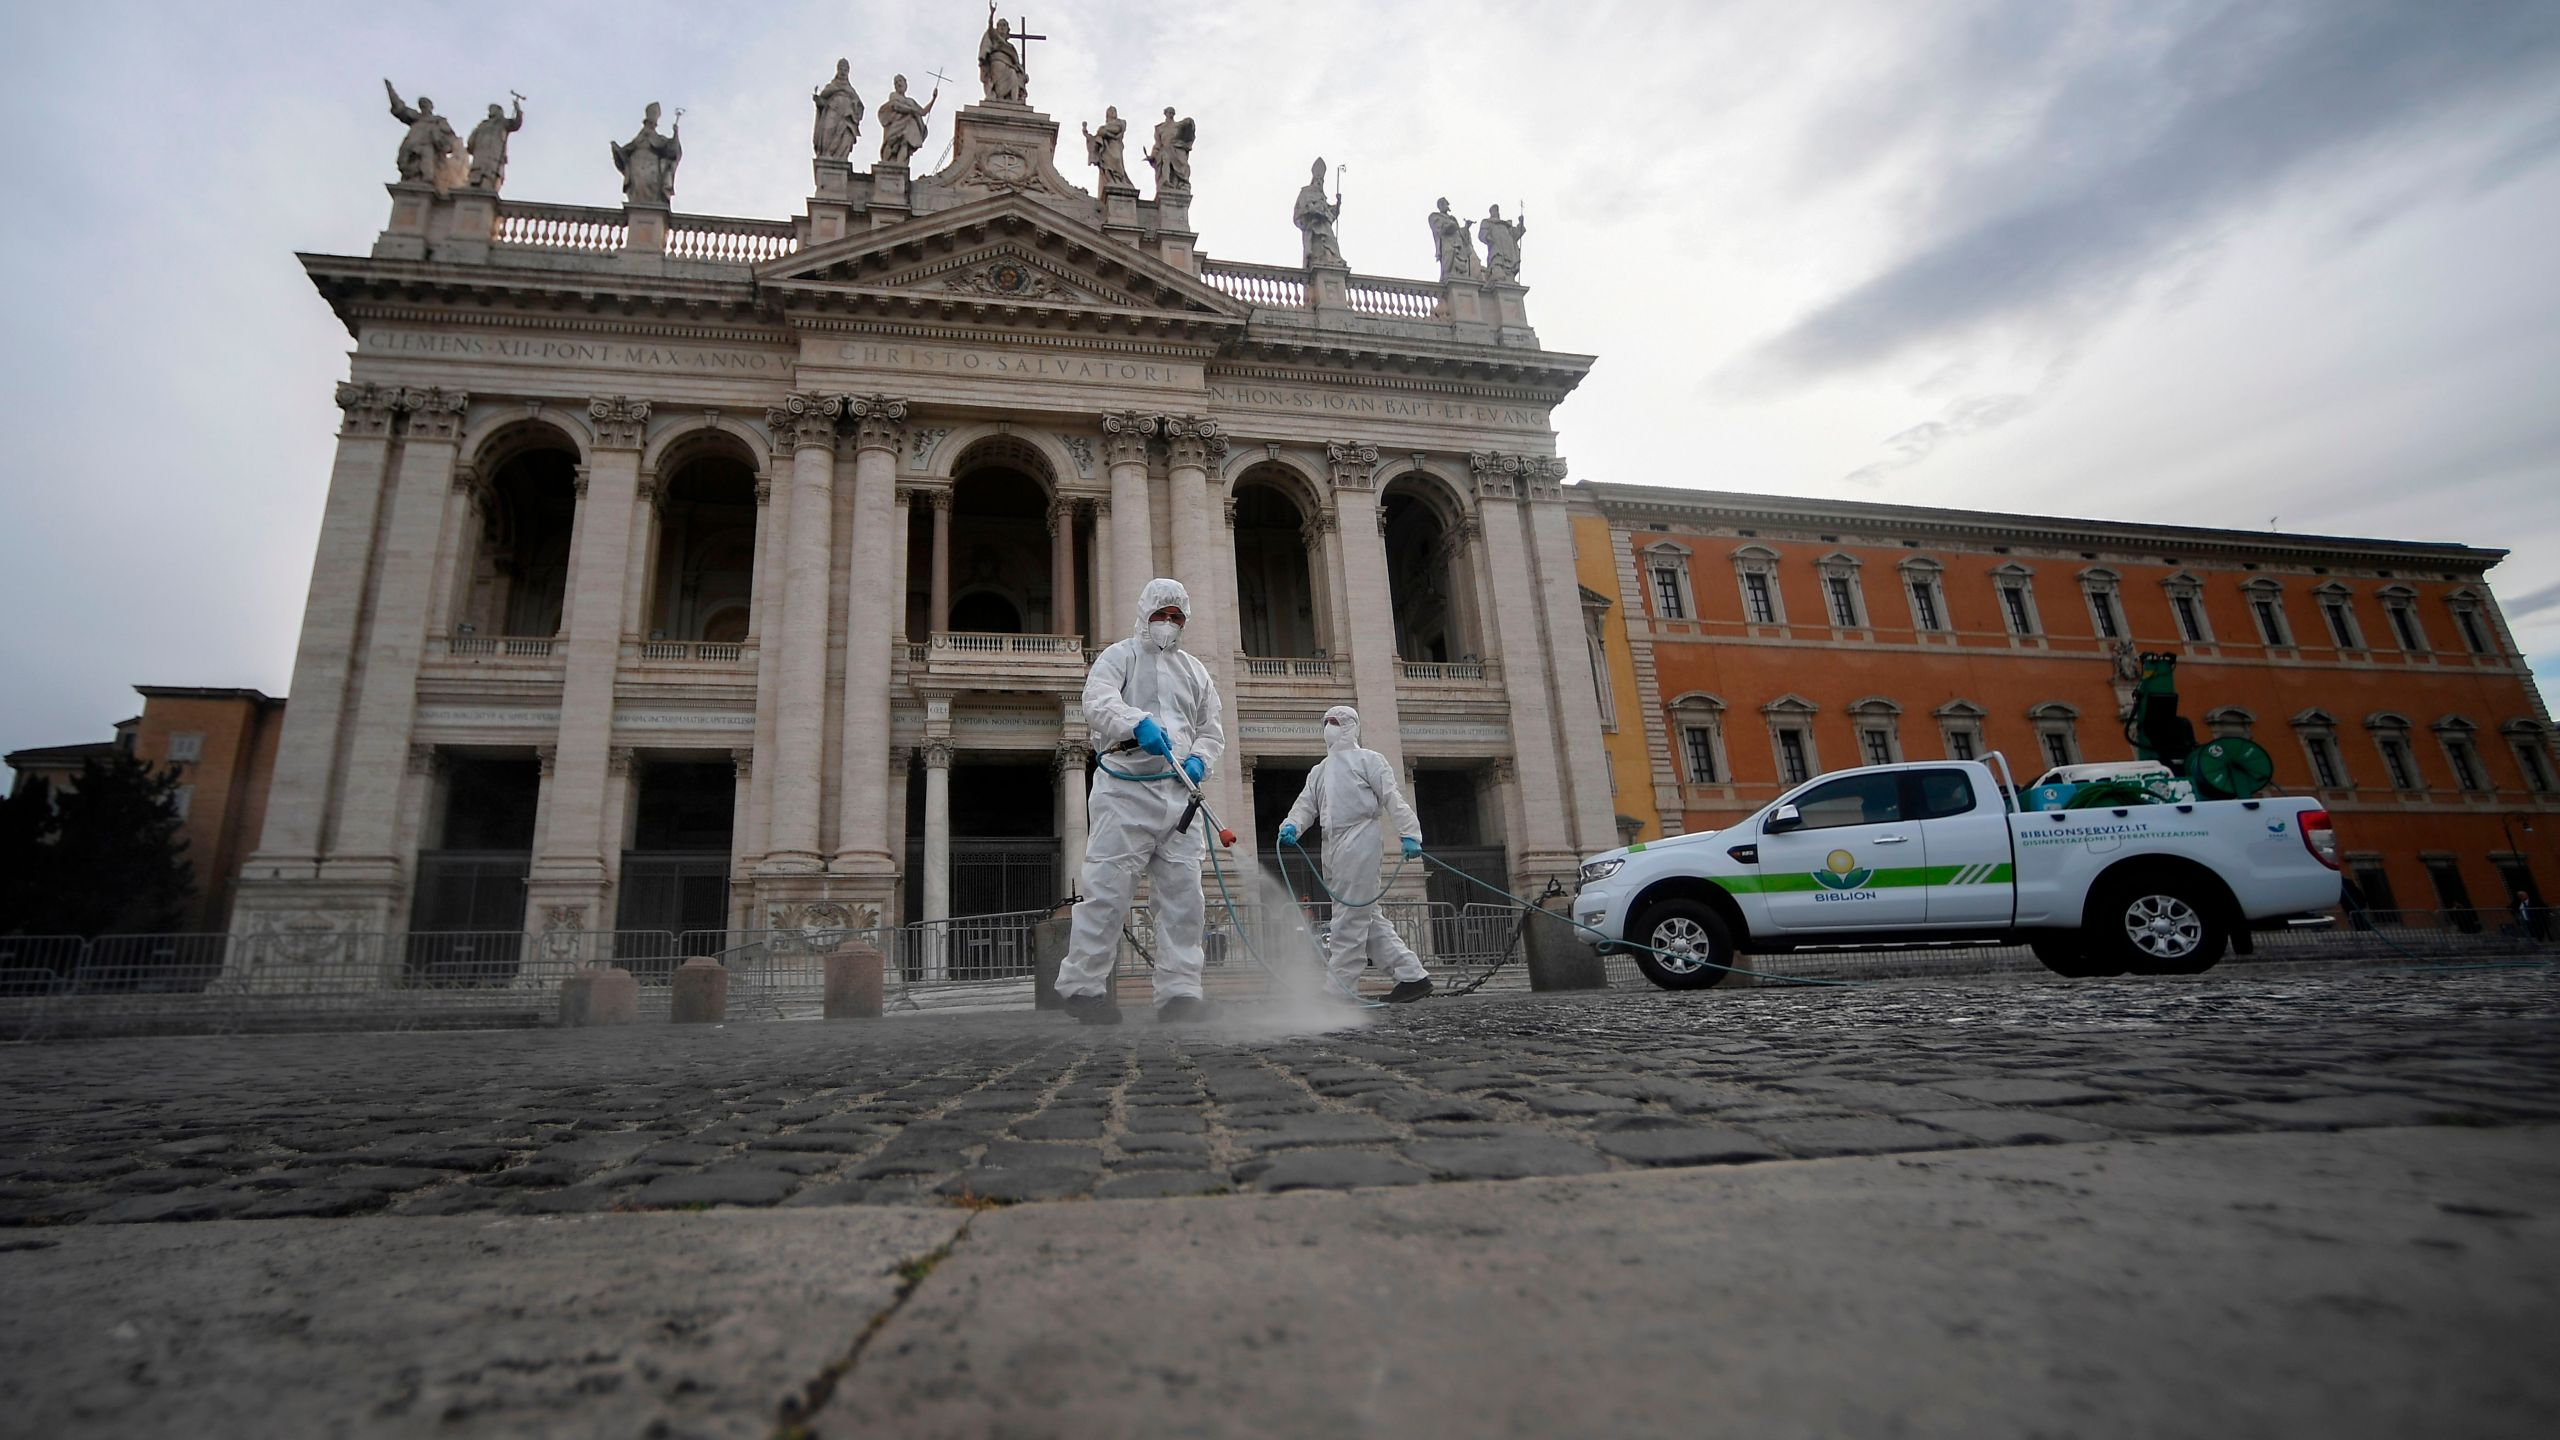 Employees of a disinfecting services company, wearing protective overalls and mask, spray sanitizer at the Archbasilica of Saint John Lateran (San Giovanni in Laterano) in Rome on May 15, 2020. (FILIPPO MONTEFORTE/AFP via Getty Images)